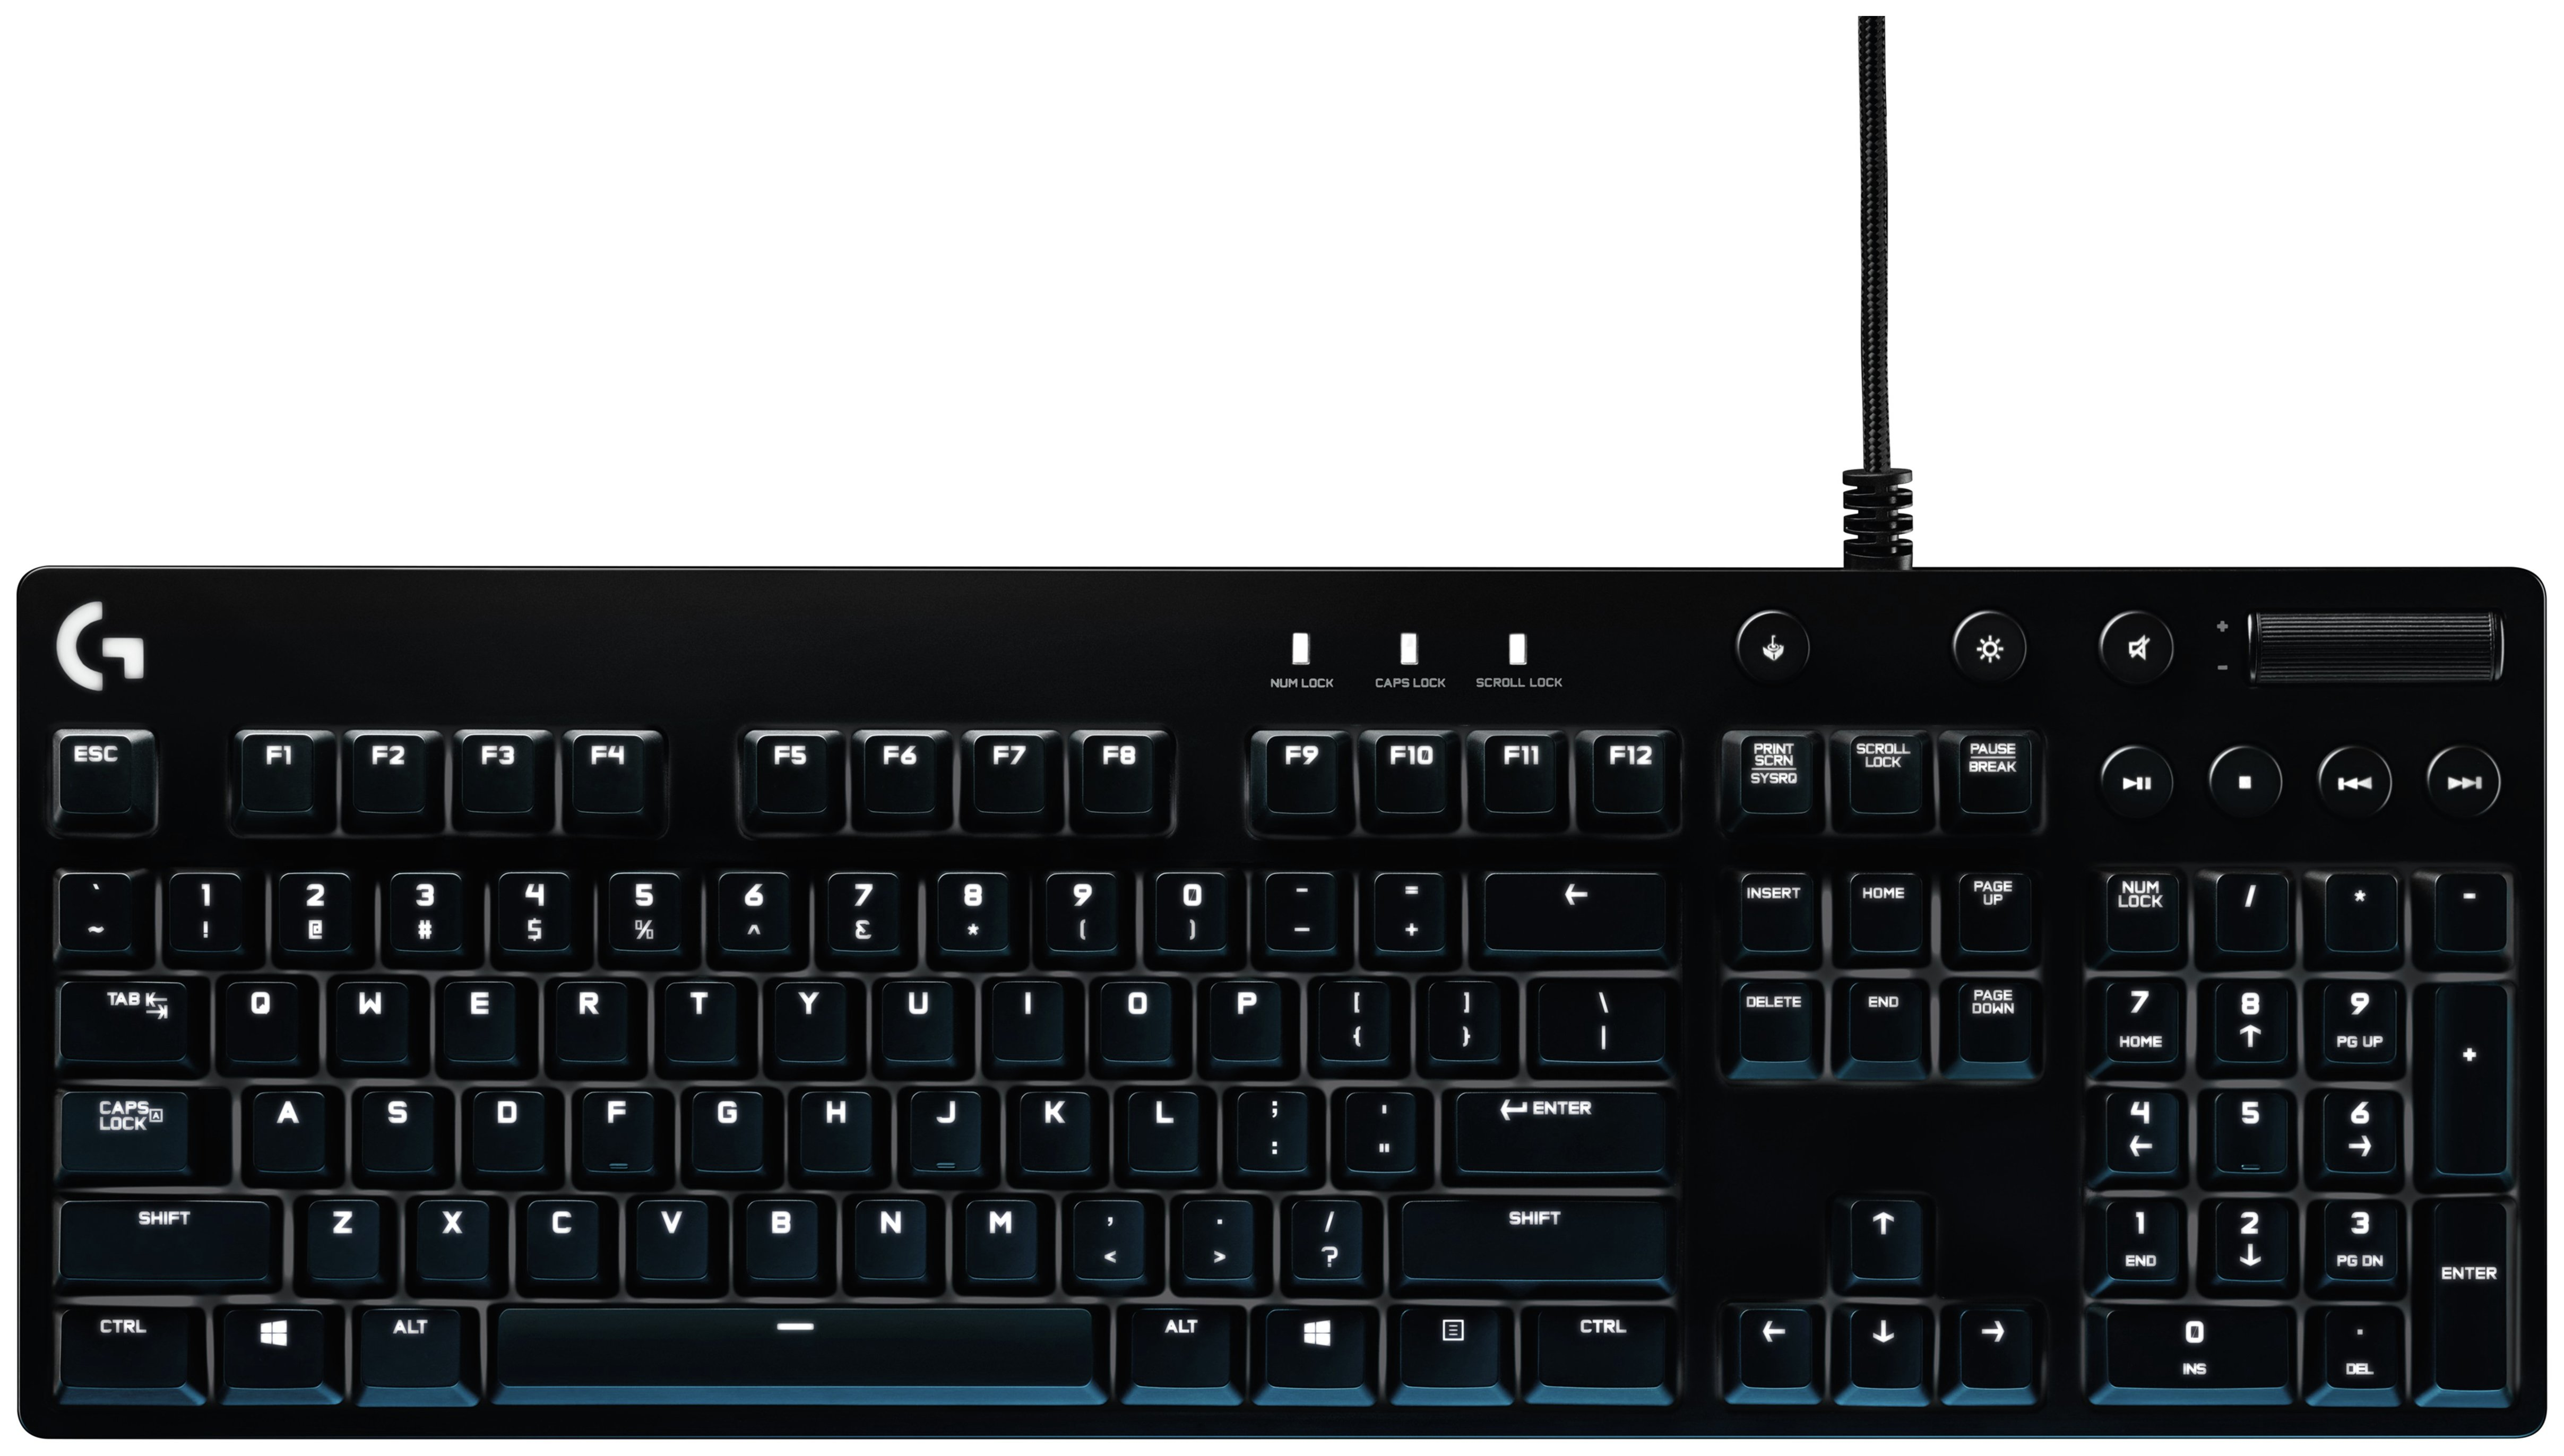 Logitech - G610 Orion - Gaming Keyboard